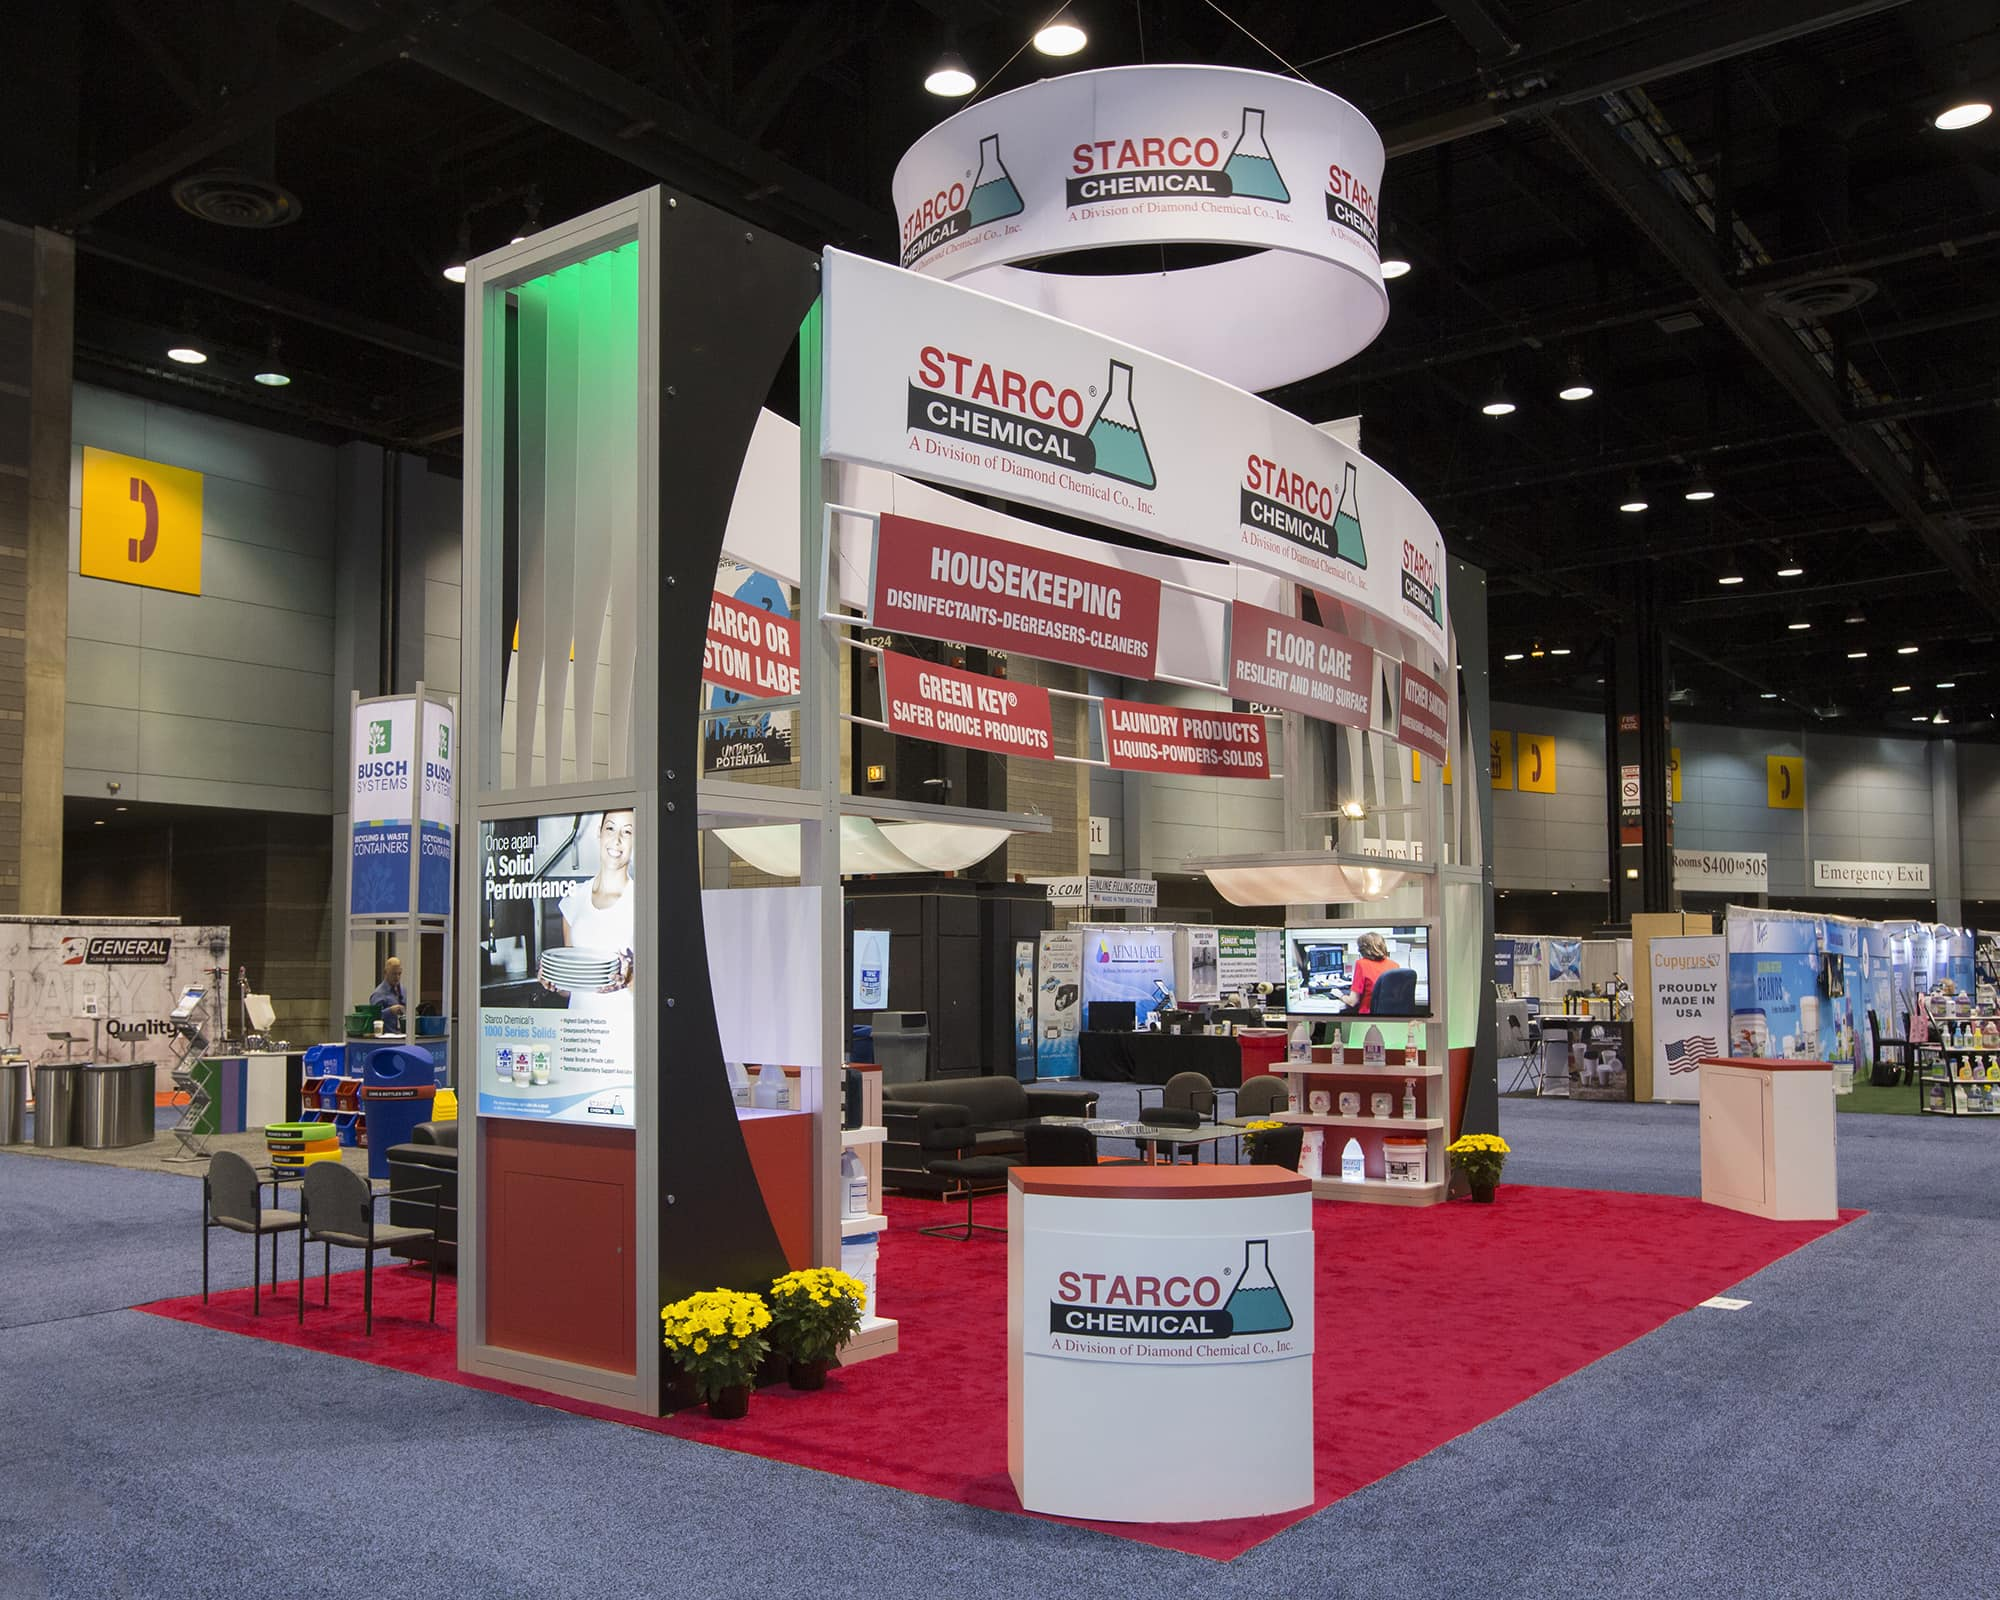 10 Sure Signs that Your Tradeshow Exhibit is a Blast from the Past